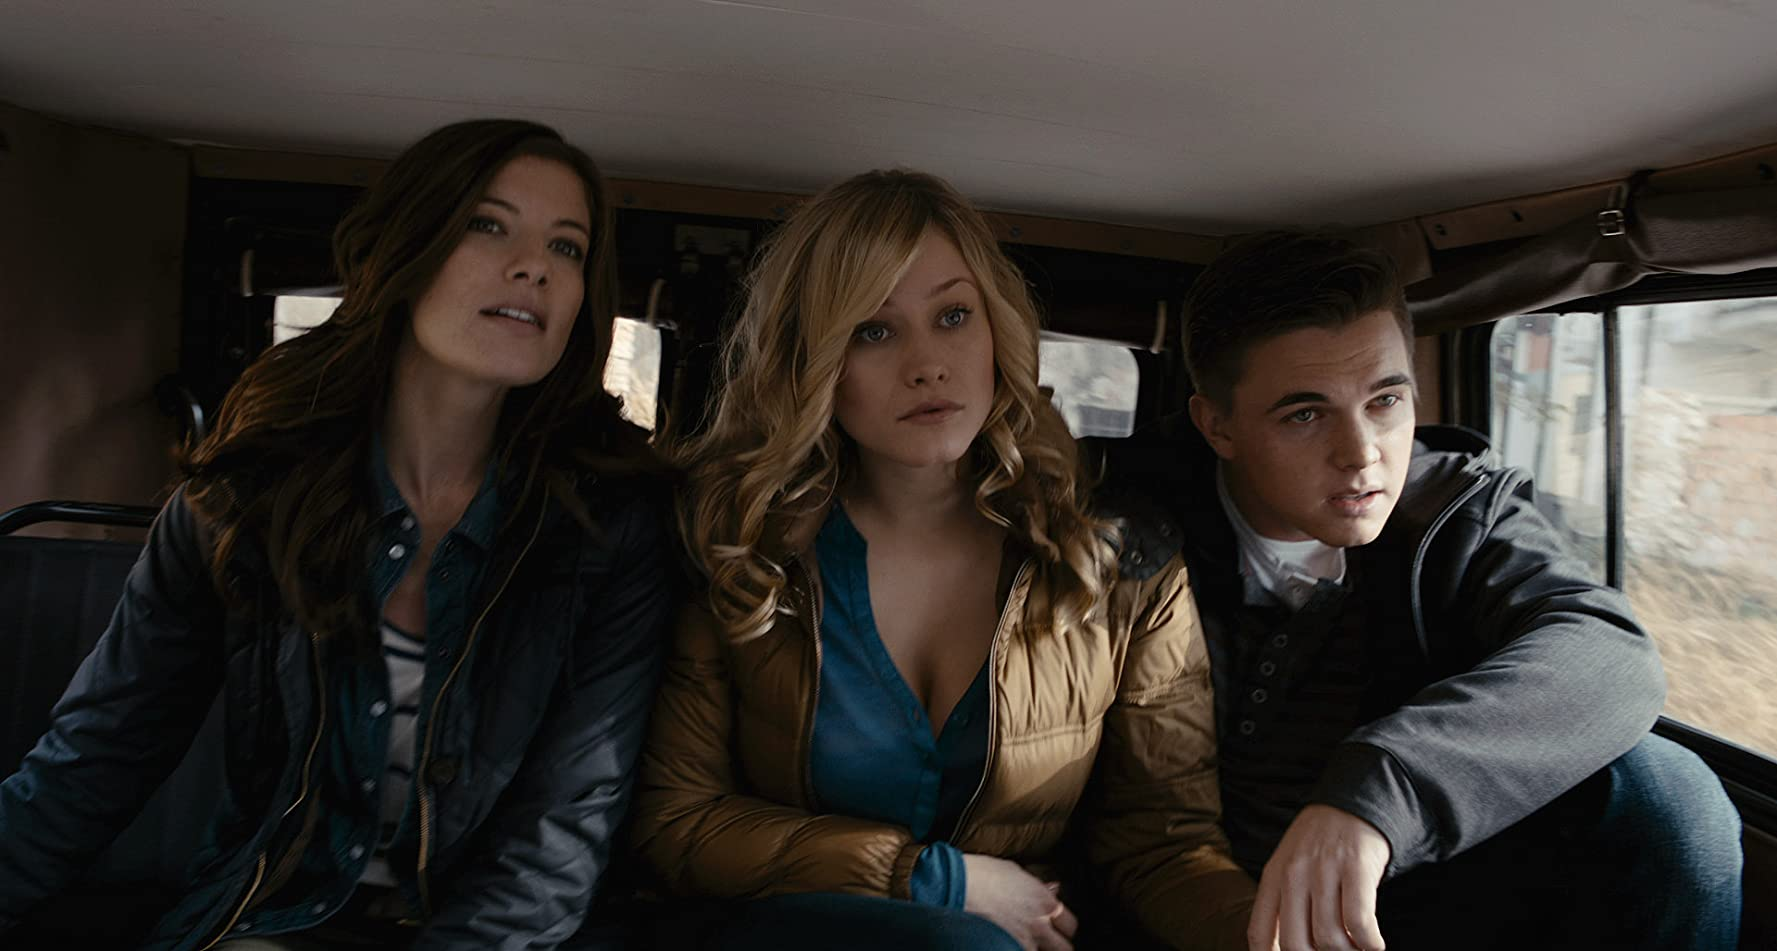 Jesse McCartney, Olivia Taylor Dudley, and Devin Kelley in Chernobyl Diaries (2012)